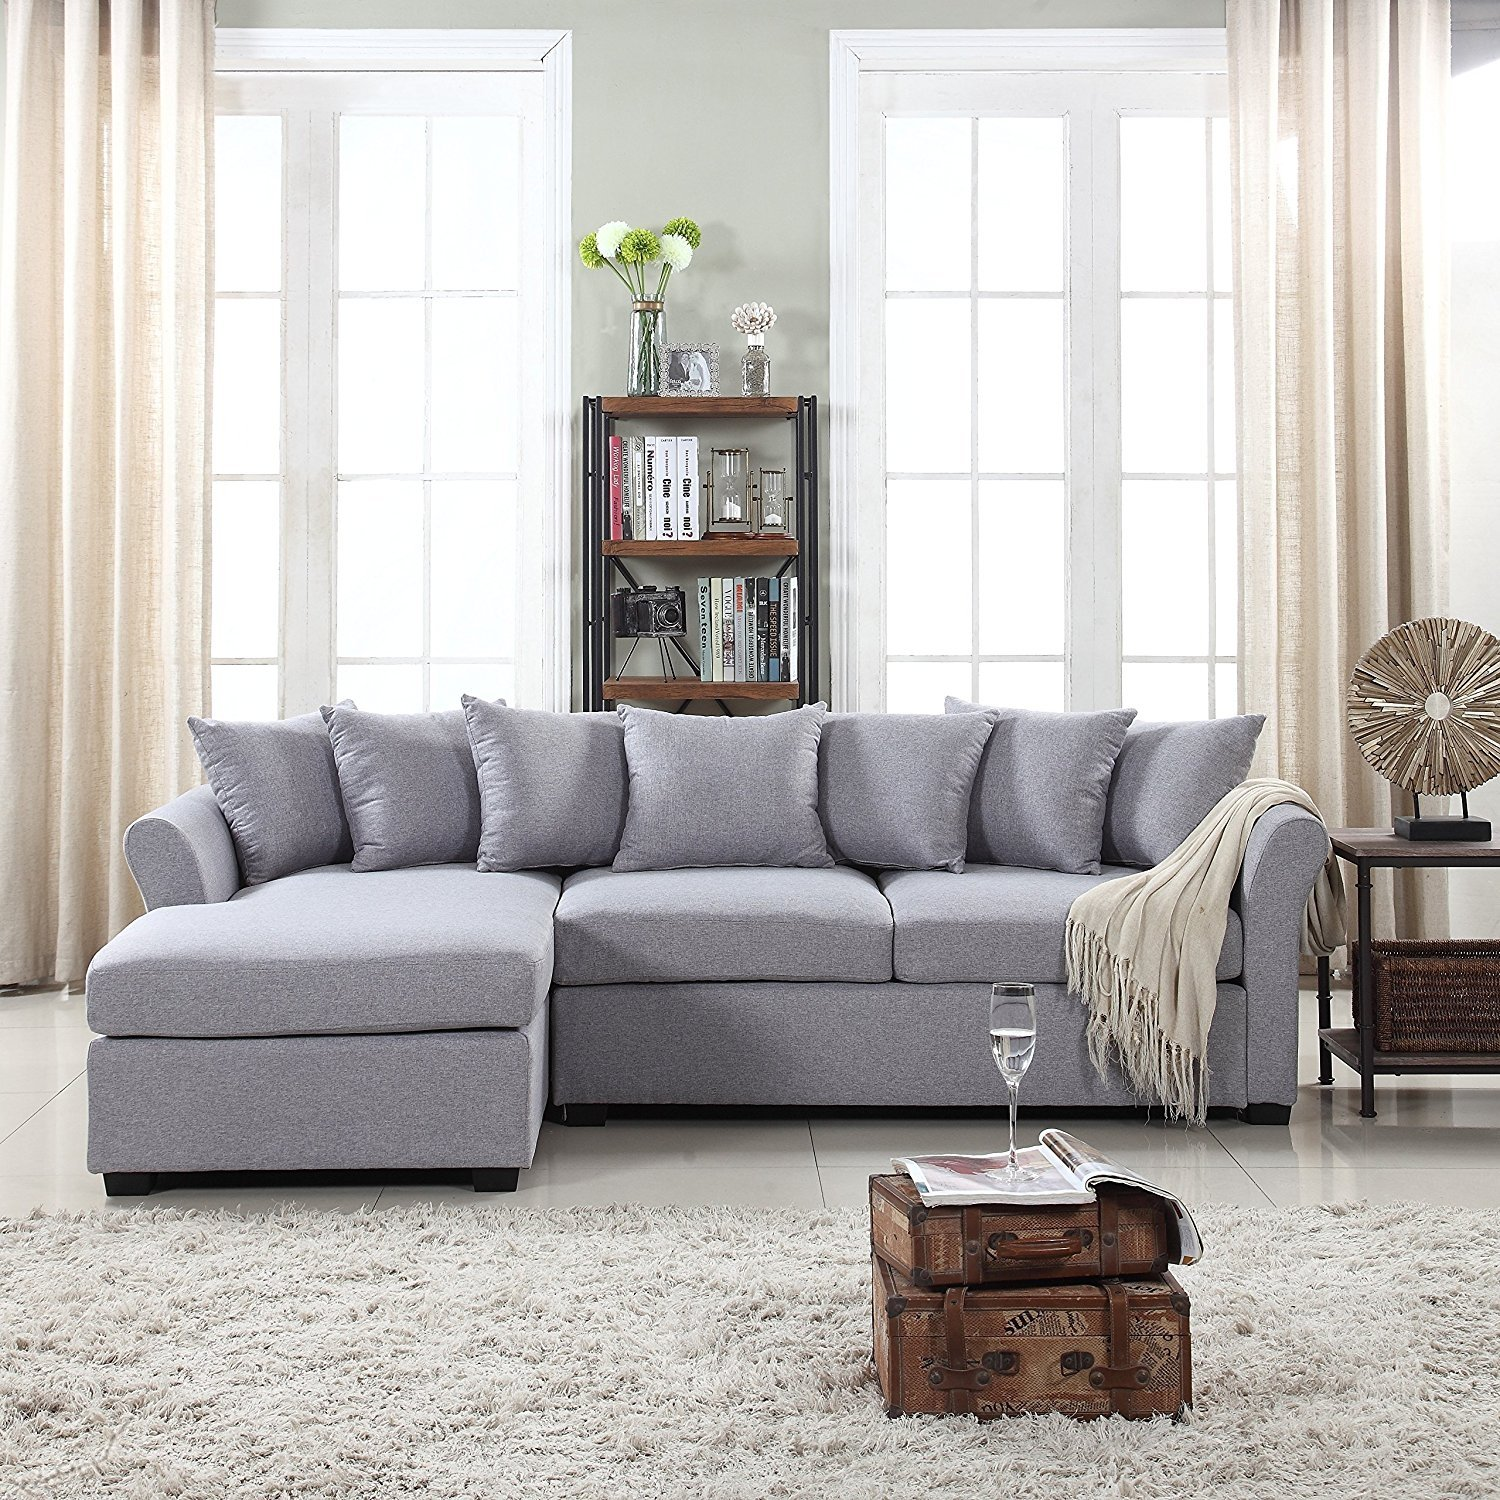 grey large l shaped sofa roma tacchini modern fabric sectional shape couch extra